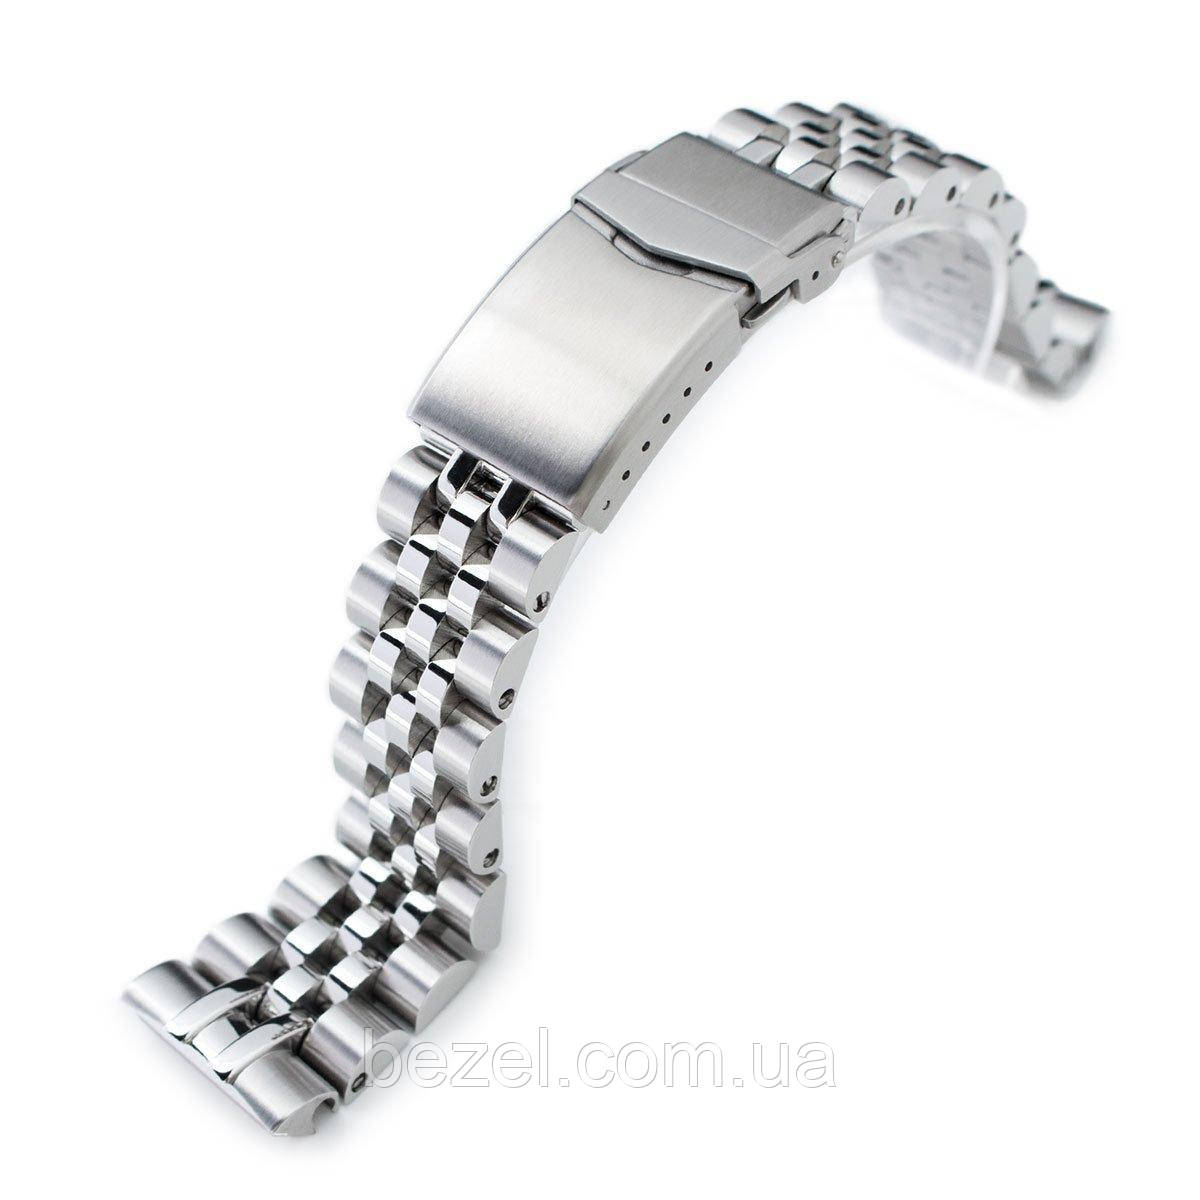 22mm ANGUS Jubilee 316L Stainless Steel Watch Bracelet for Seiko Turtle SRP777, Brushed/Polished, V-Clasp